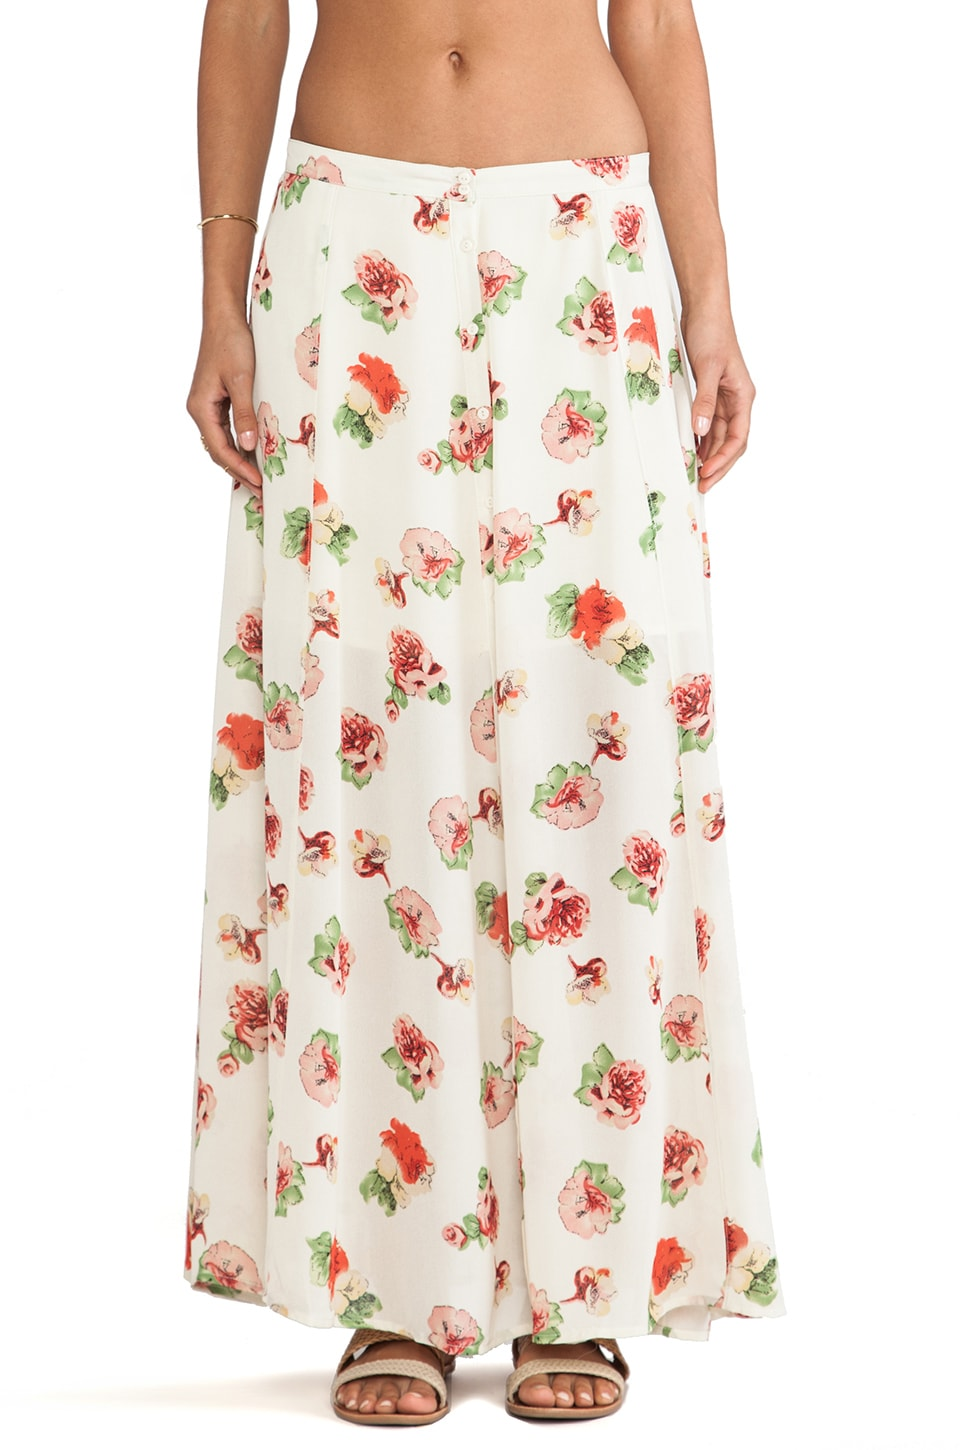 Lucca Couture Floral Maxi Skirt in Ivory Floral